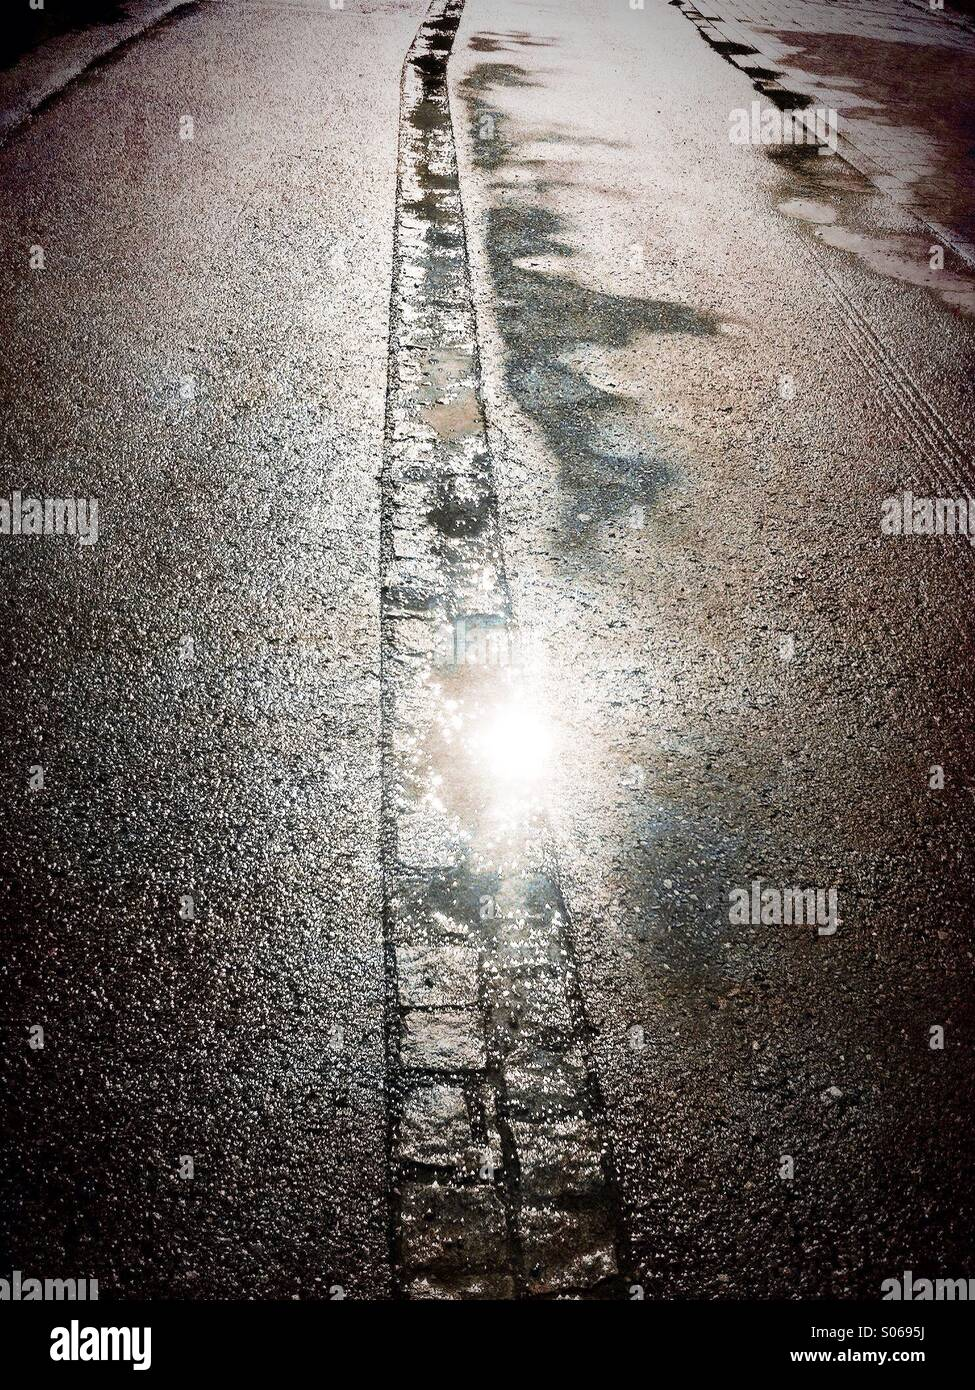 Wet asphalt - the color of calm, harmony and practicality 75